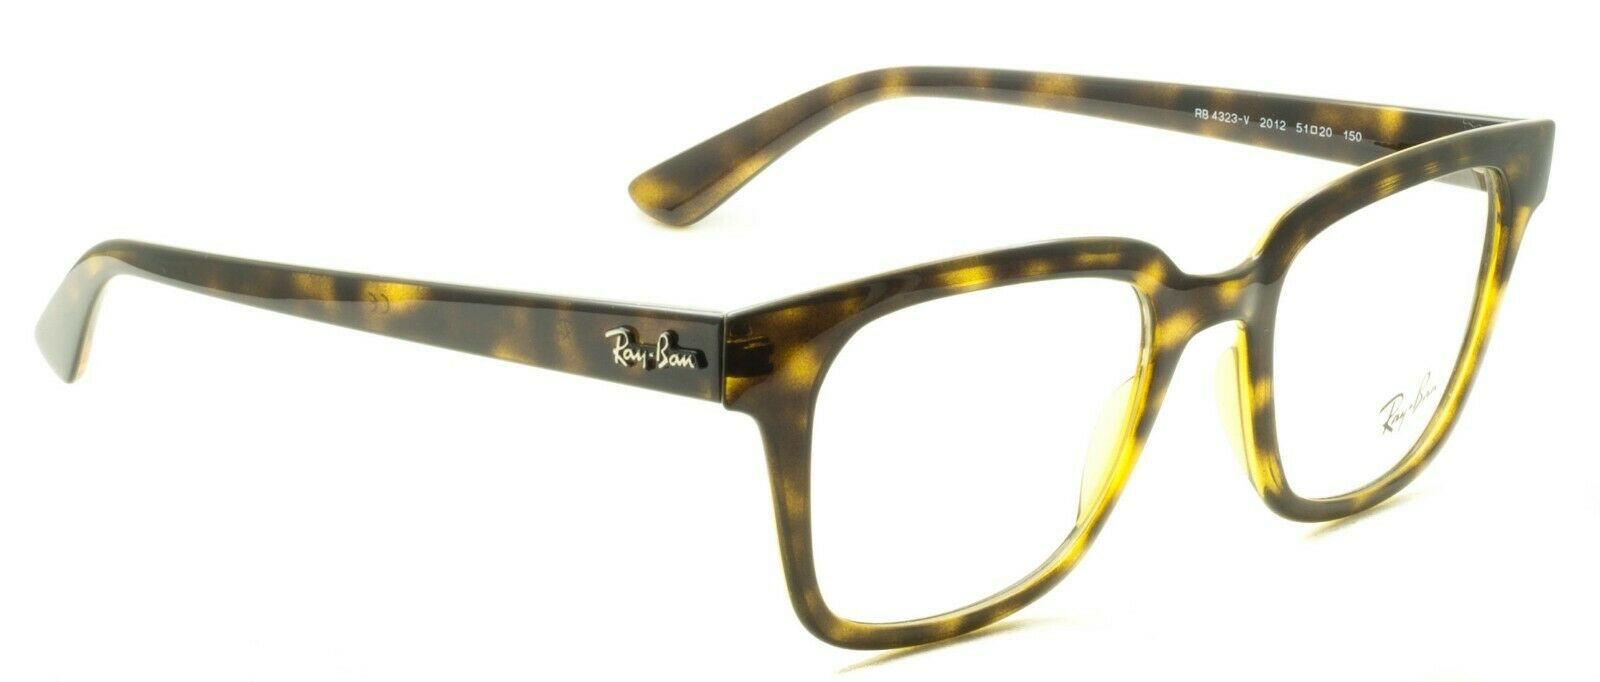 RAY BAN RB 4323-V 2012 51mm RX Optical FRAMES RAYBAN Glasses Eyewear New - Italy